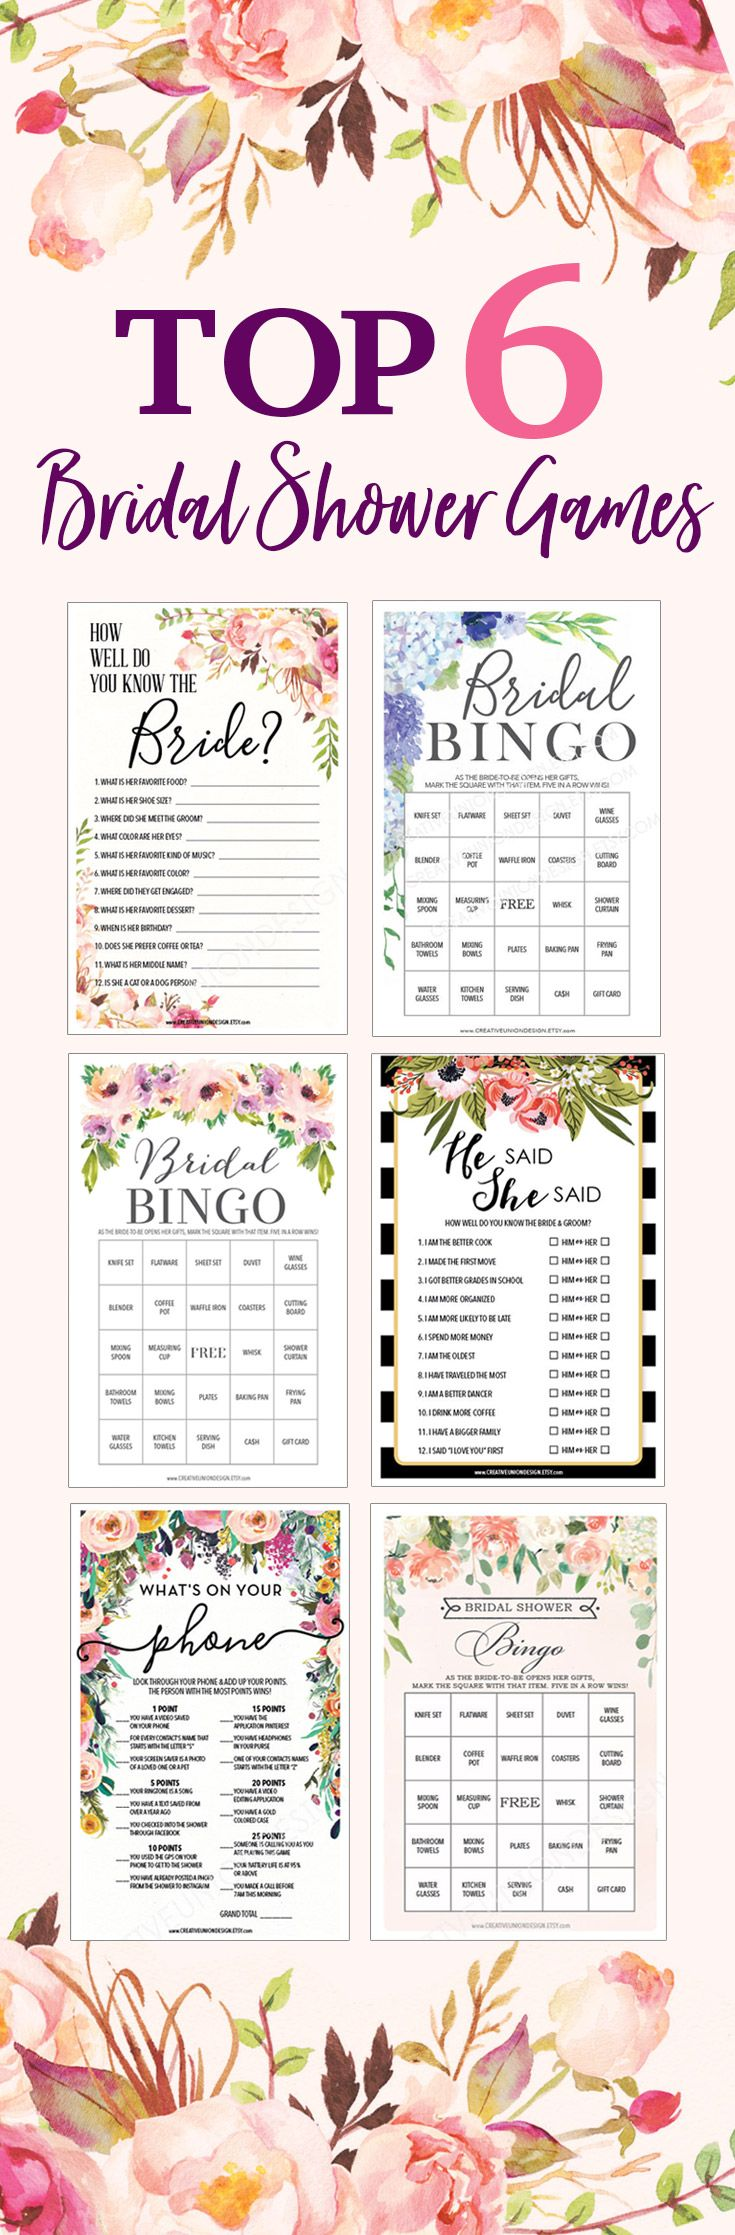 Looking For Fun Bridal Shower Ideas Here Are Six Of Our Most Popular Games That You Can Easily Download Print Cut Out In Minutes